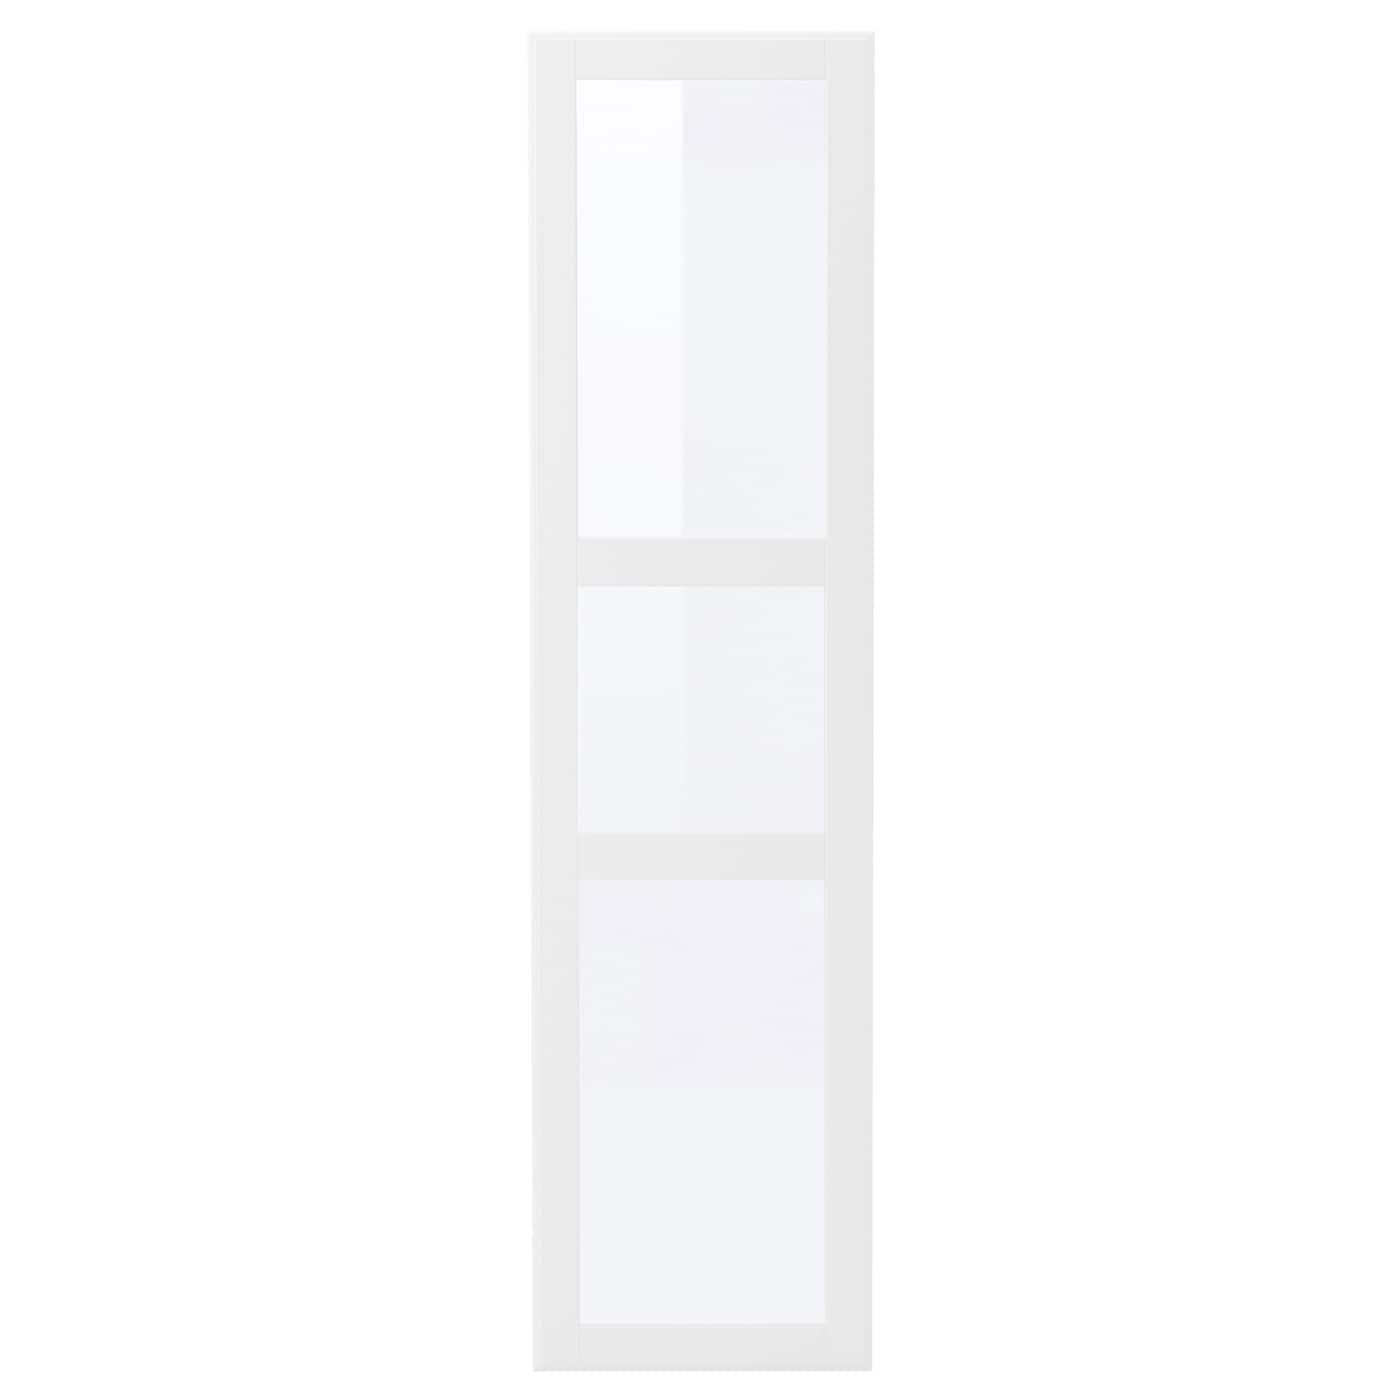 tyssedal porte blanc verre 50x195 cm ikea. Black Bedroom Furniture Sets. Home Design Ideas